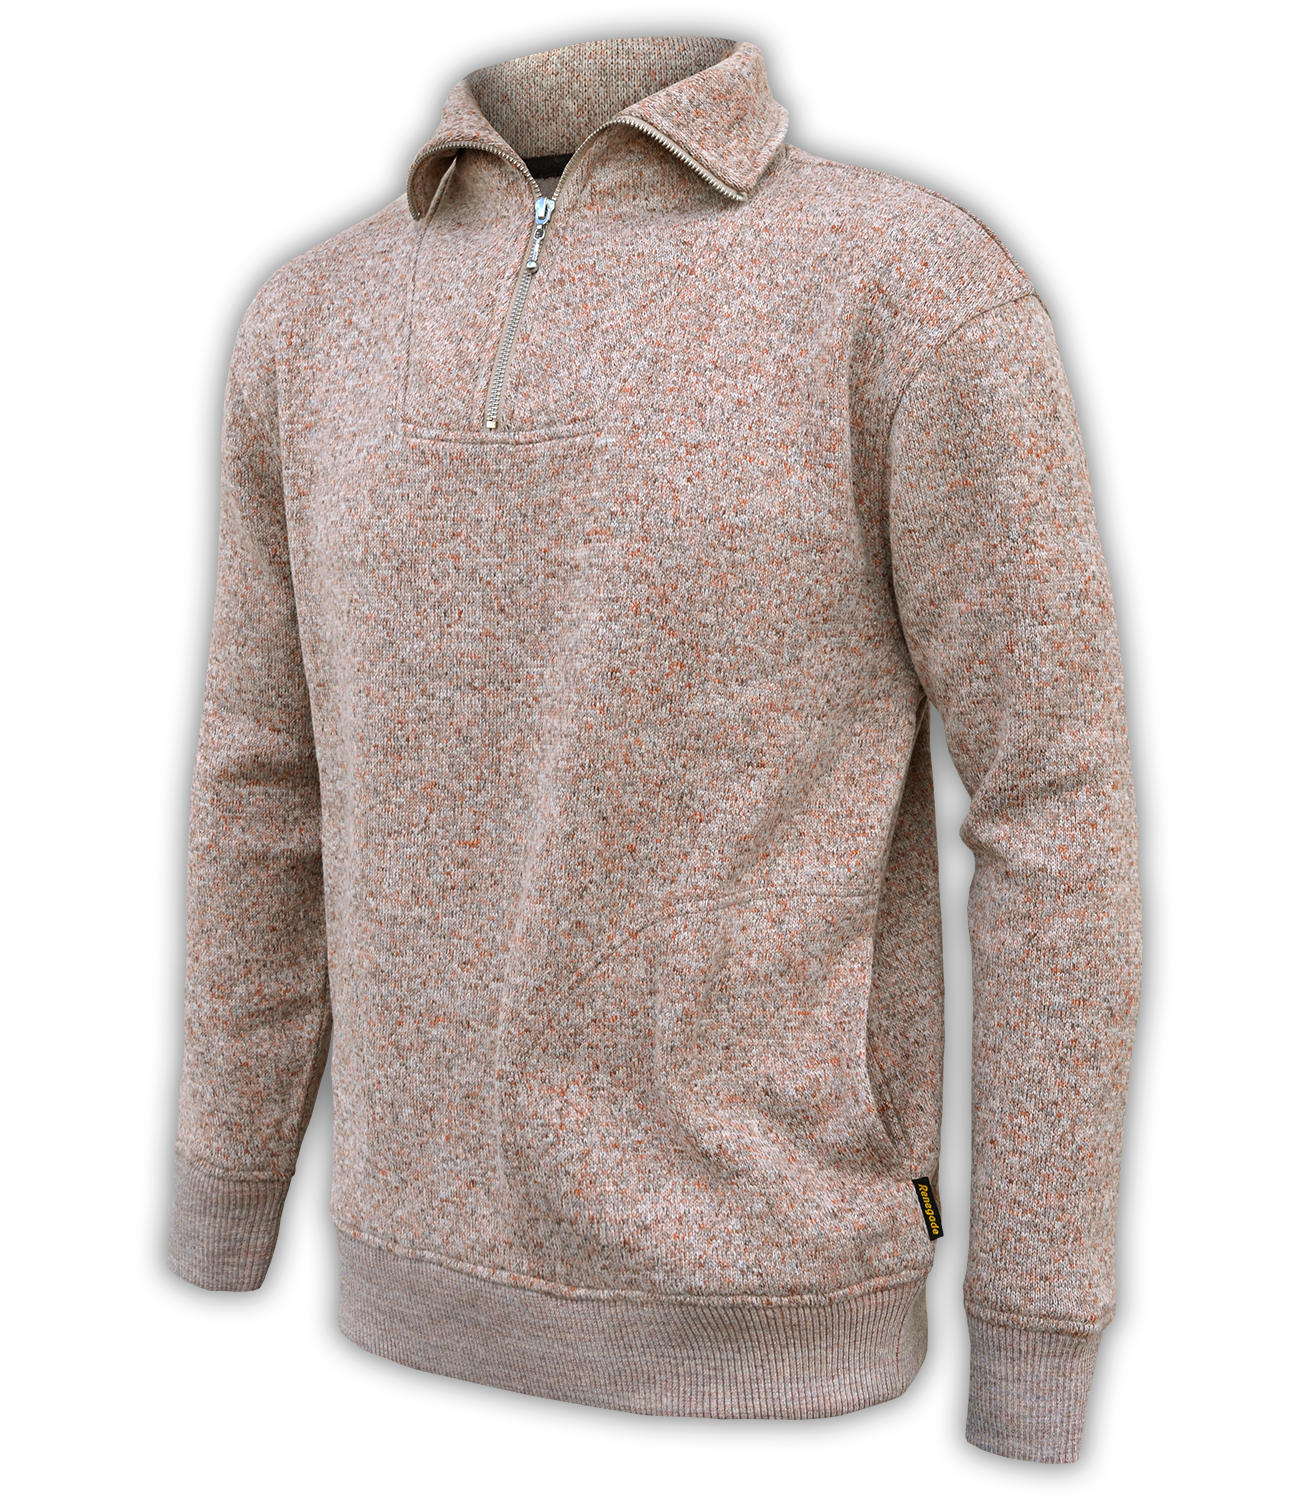 men's loosely fitted pullover